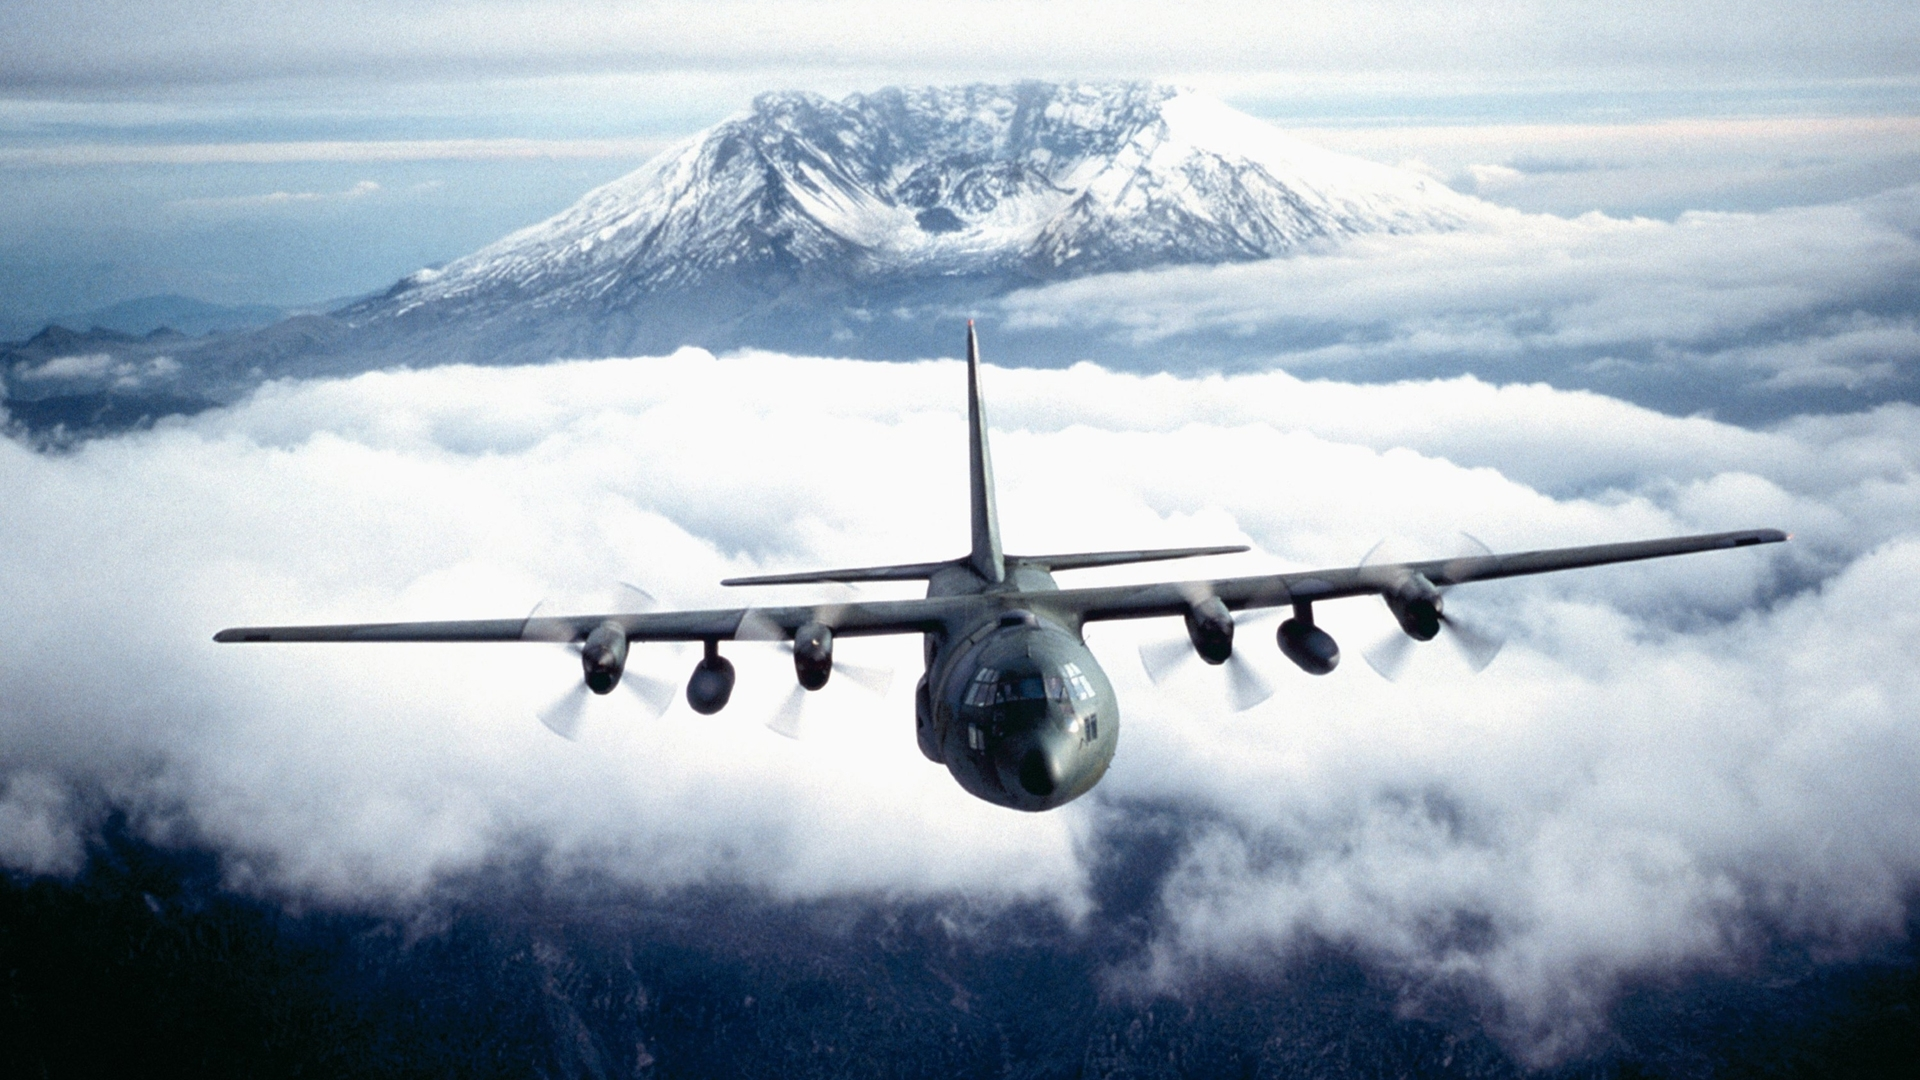 c130 wallpapers group (75+)